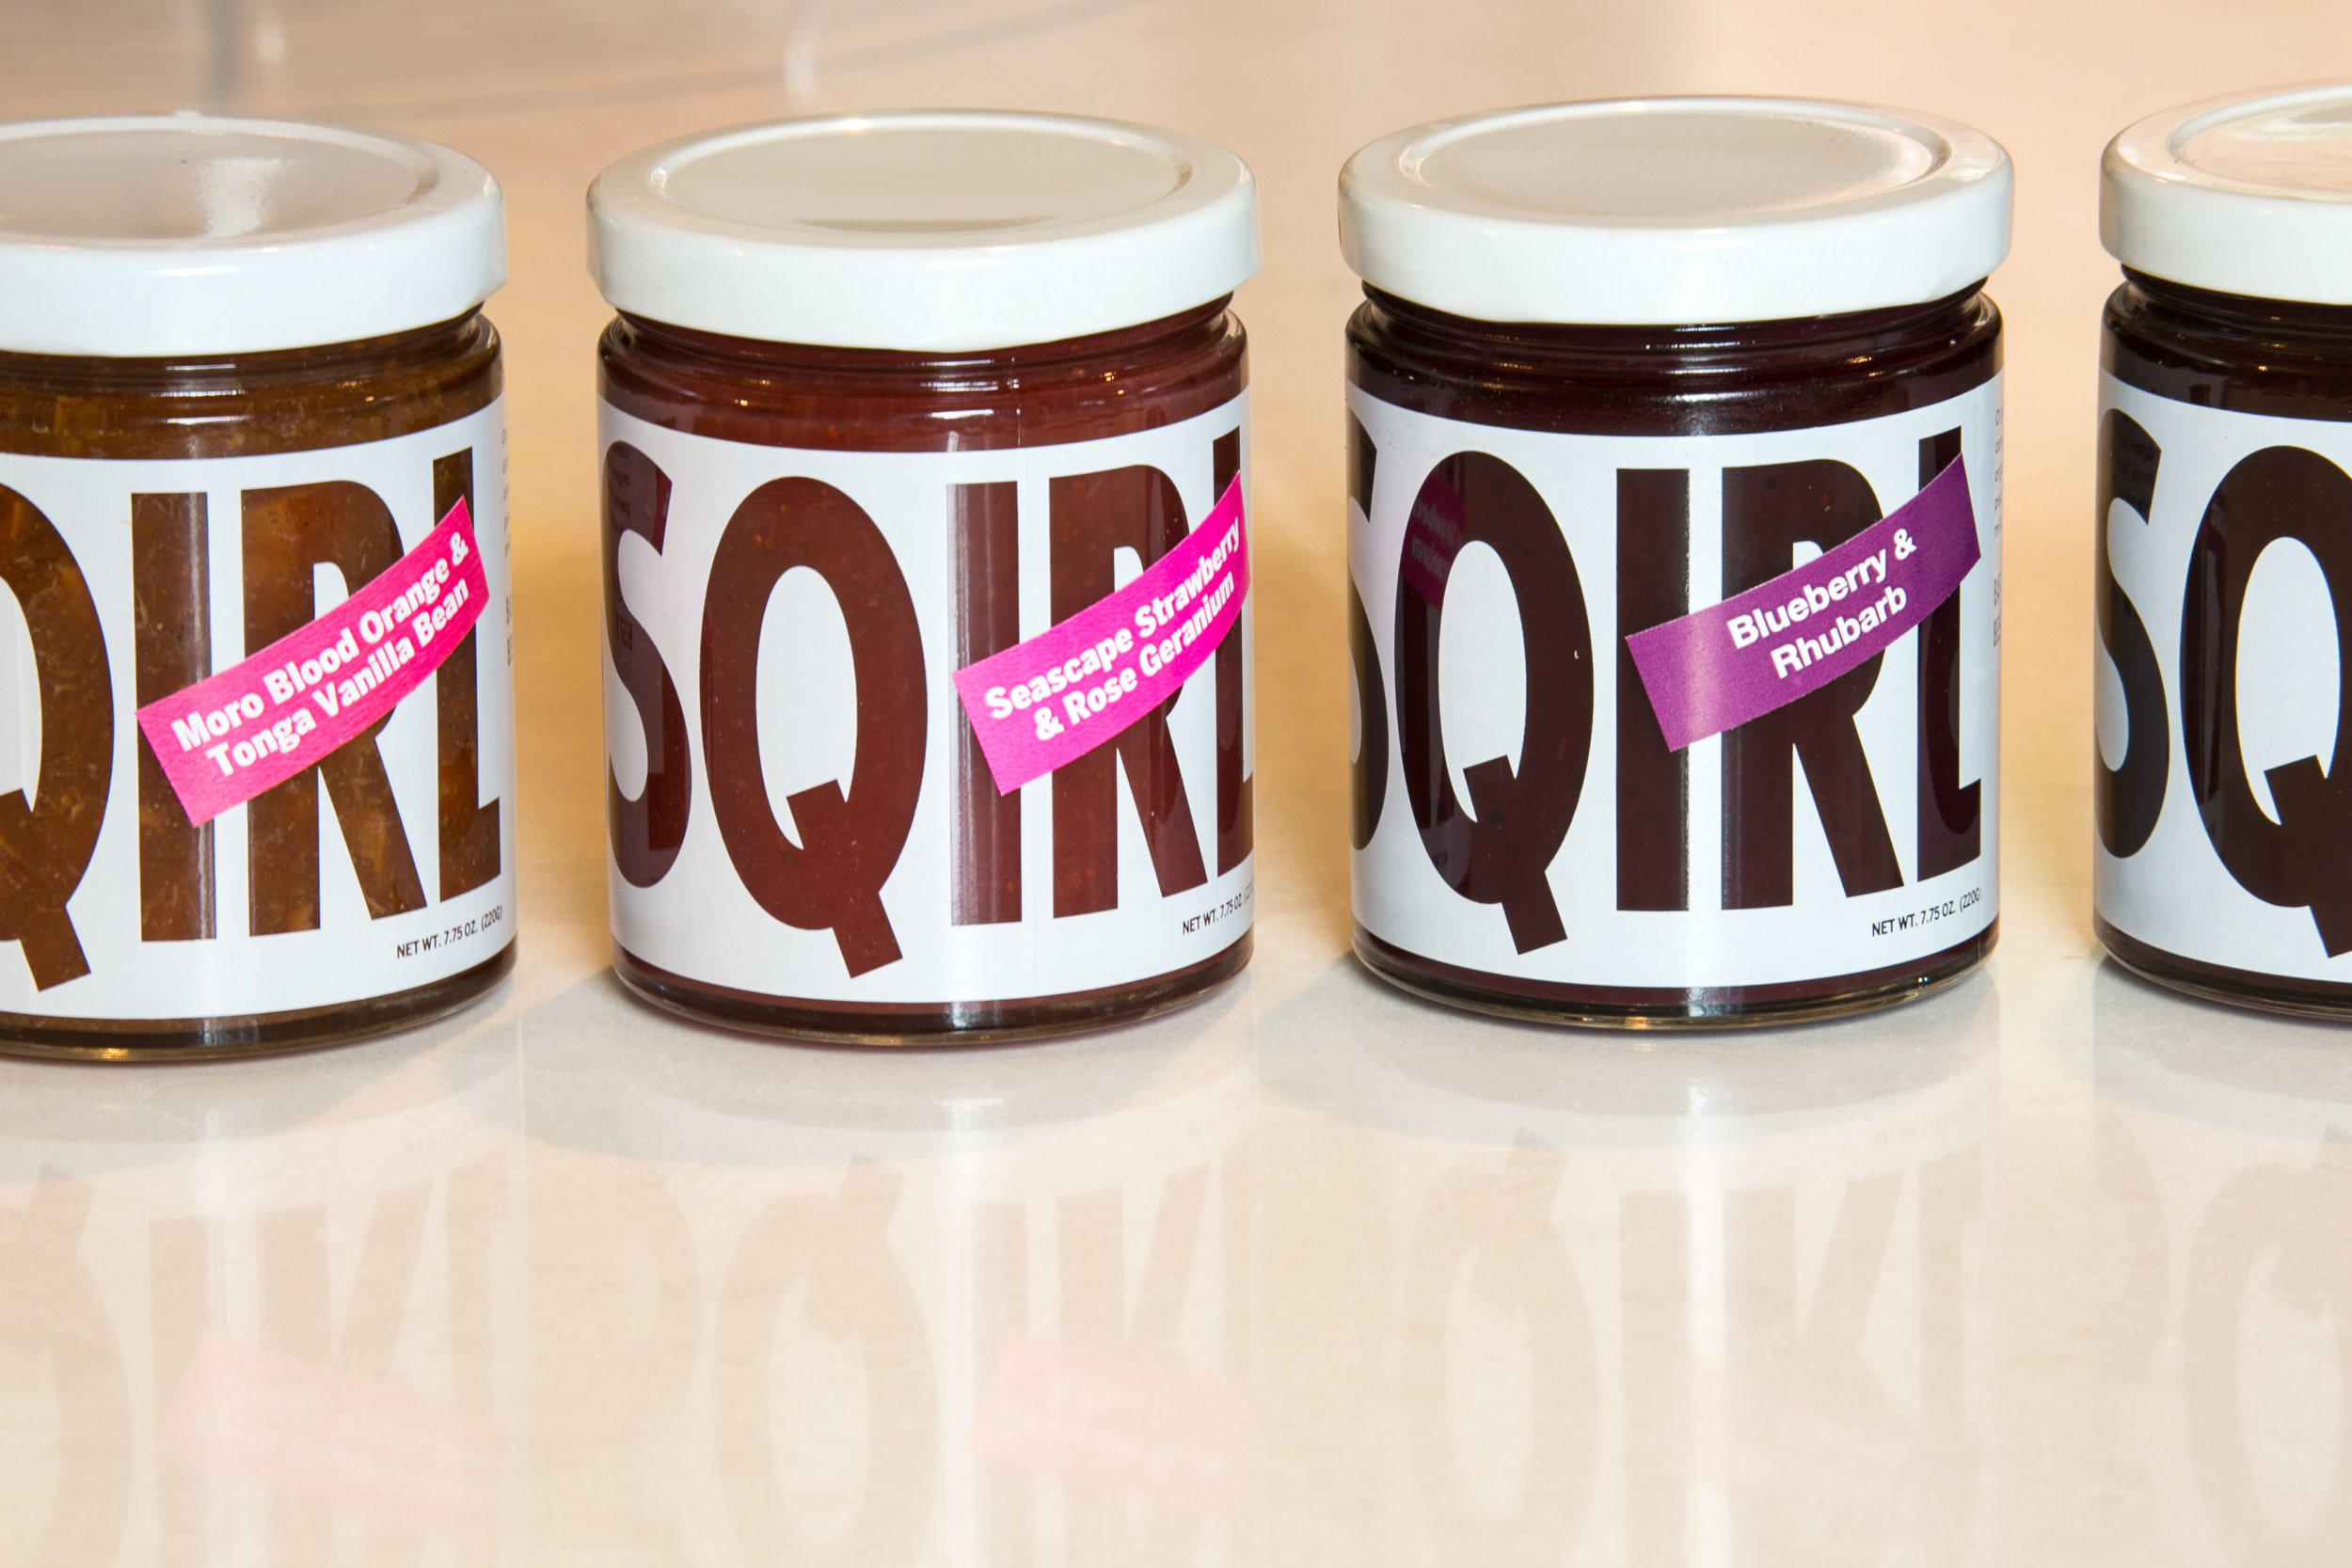 Our current selection of Sqirl preserves